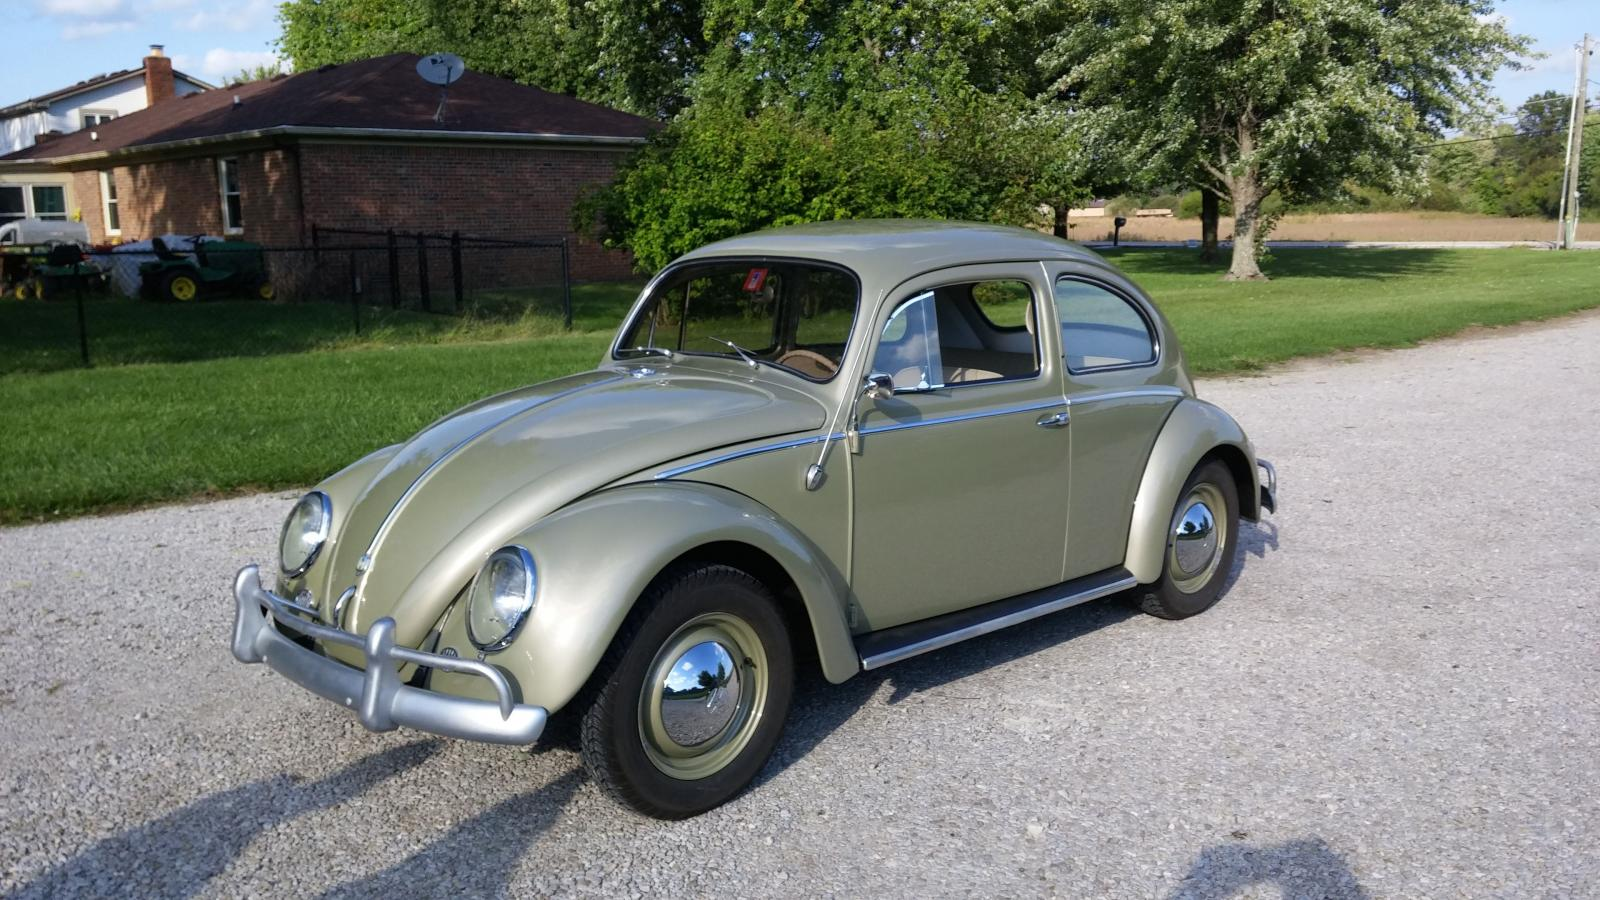 hight resolution of thesamba com beetle 1958 1967 view topic best car cover for beetle 19581967 view topic early bug late wiring harness